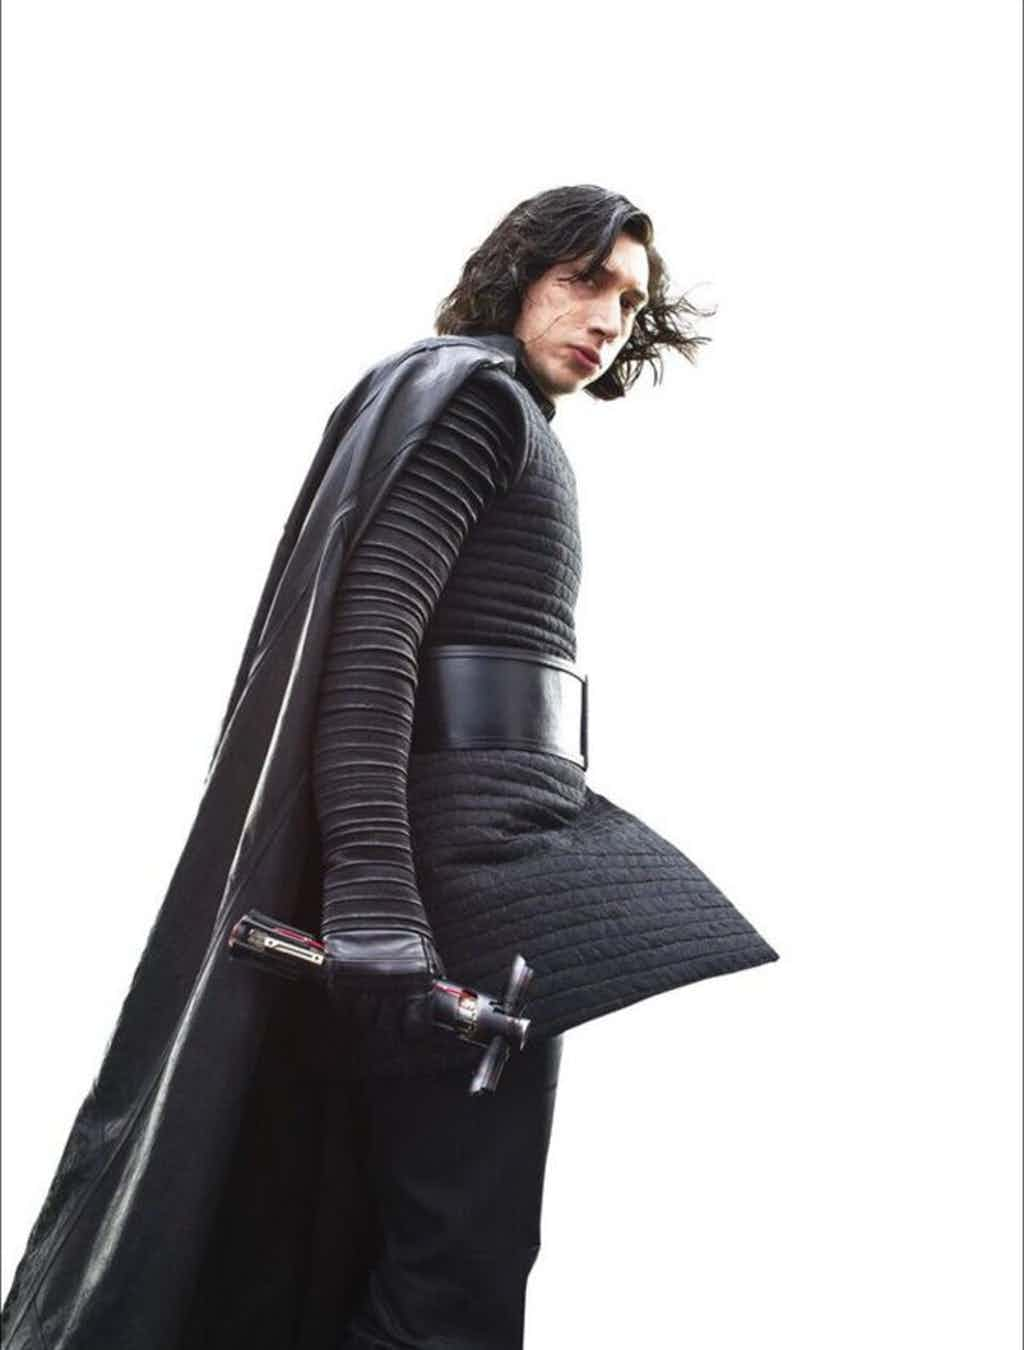 Star-Wars-The-Last-Jedi-Adam-Driver-as-Kylo-Ren-Holding-Lightsaber-Hilt.jpg